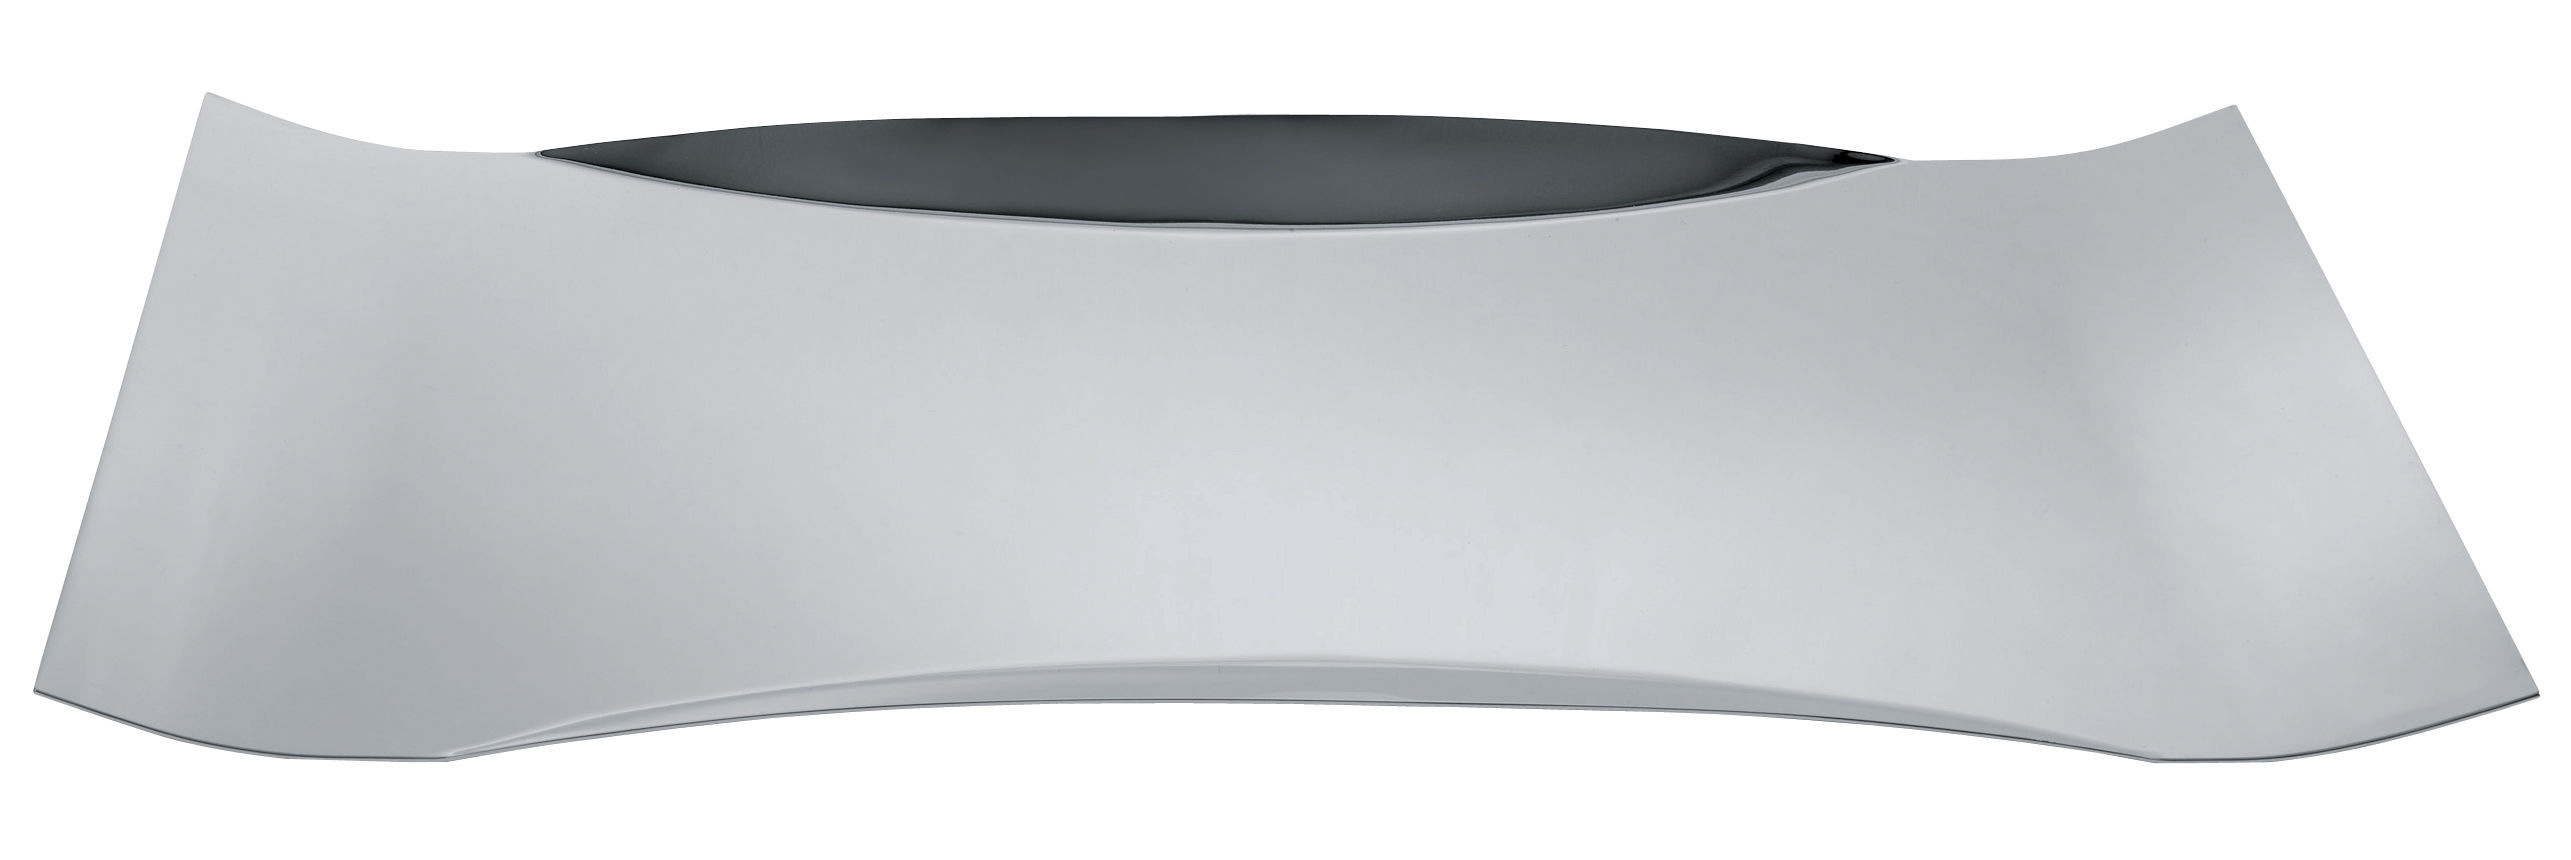 Tableware - Trays - Mao-Mao Tray by Alessi - Steel - Stainless steel